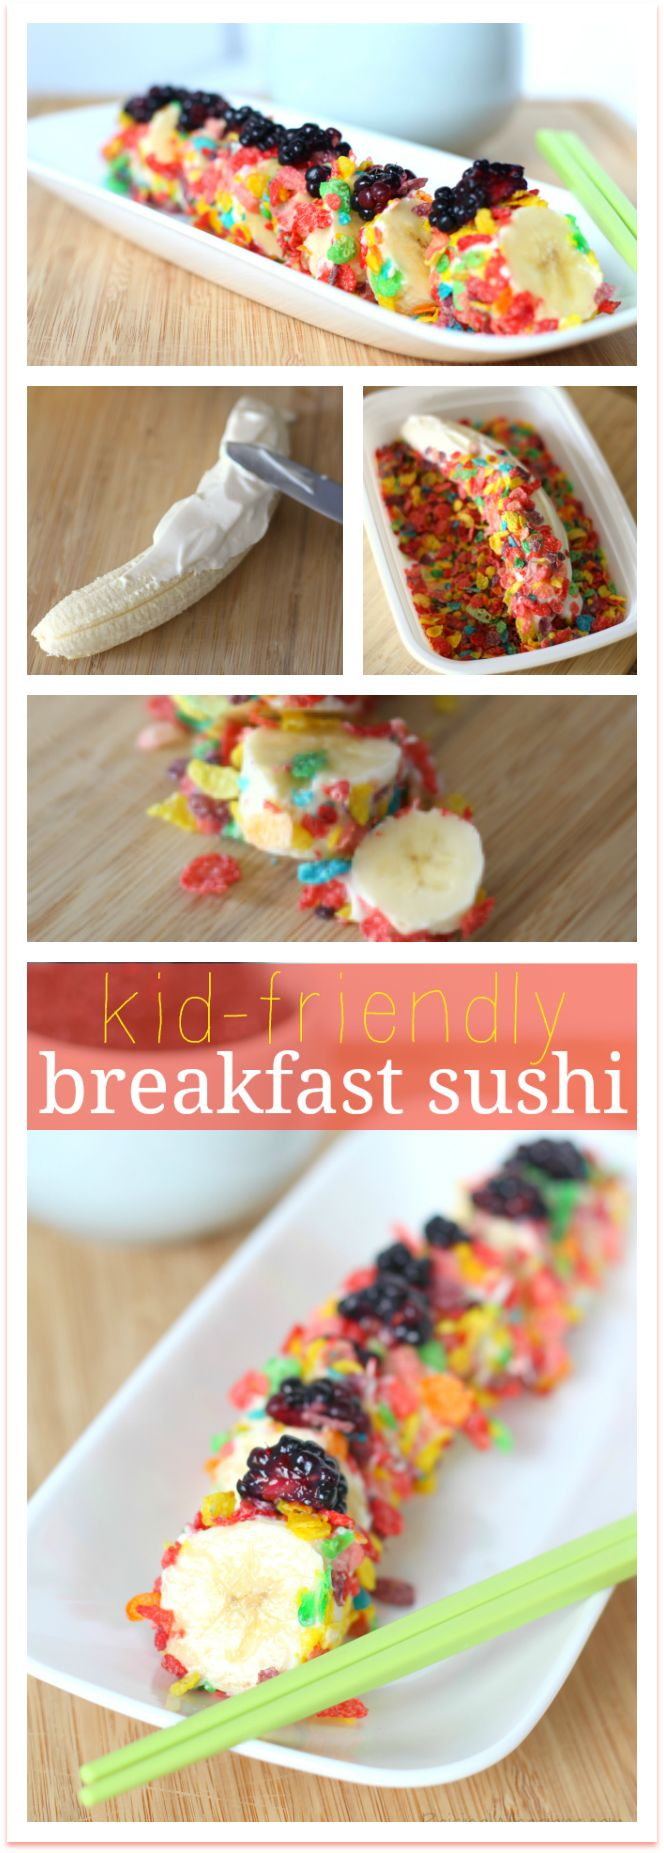 Kid Friendly Breakfast Sushi Recipe | Fun Kids Breakfast Idea, Perfect for Back to School - Raising Whasians